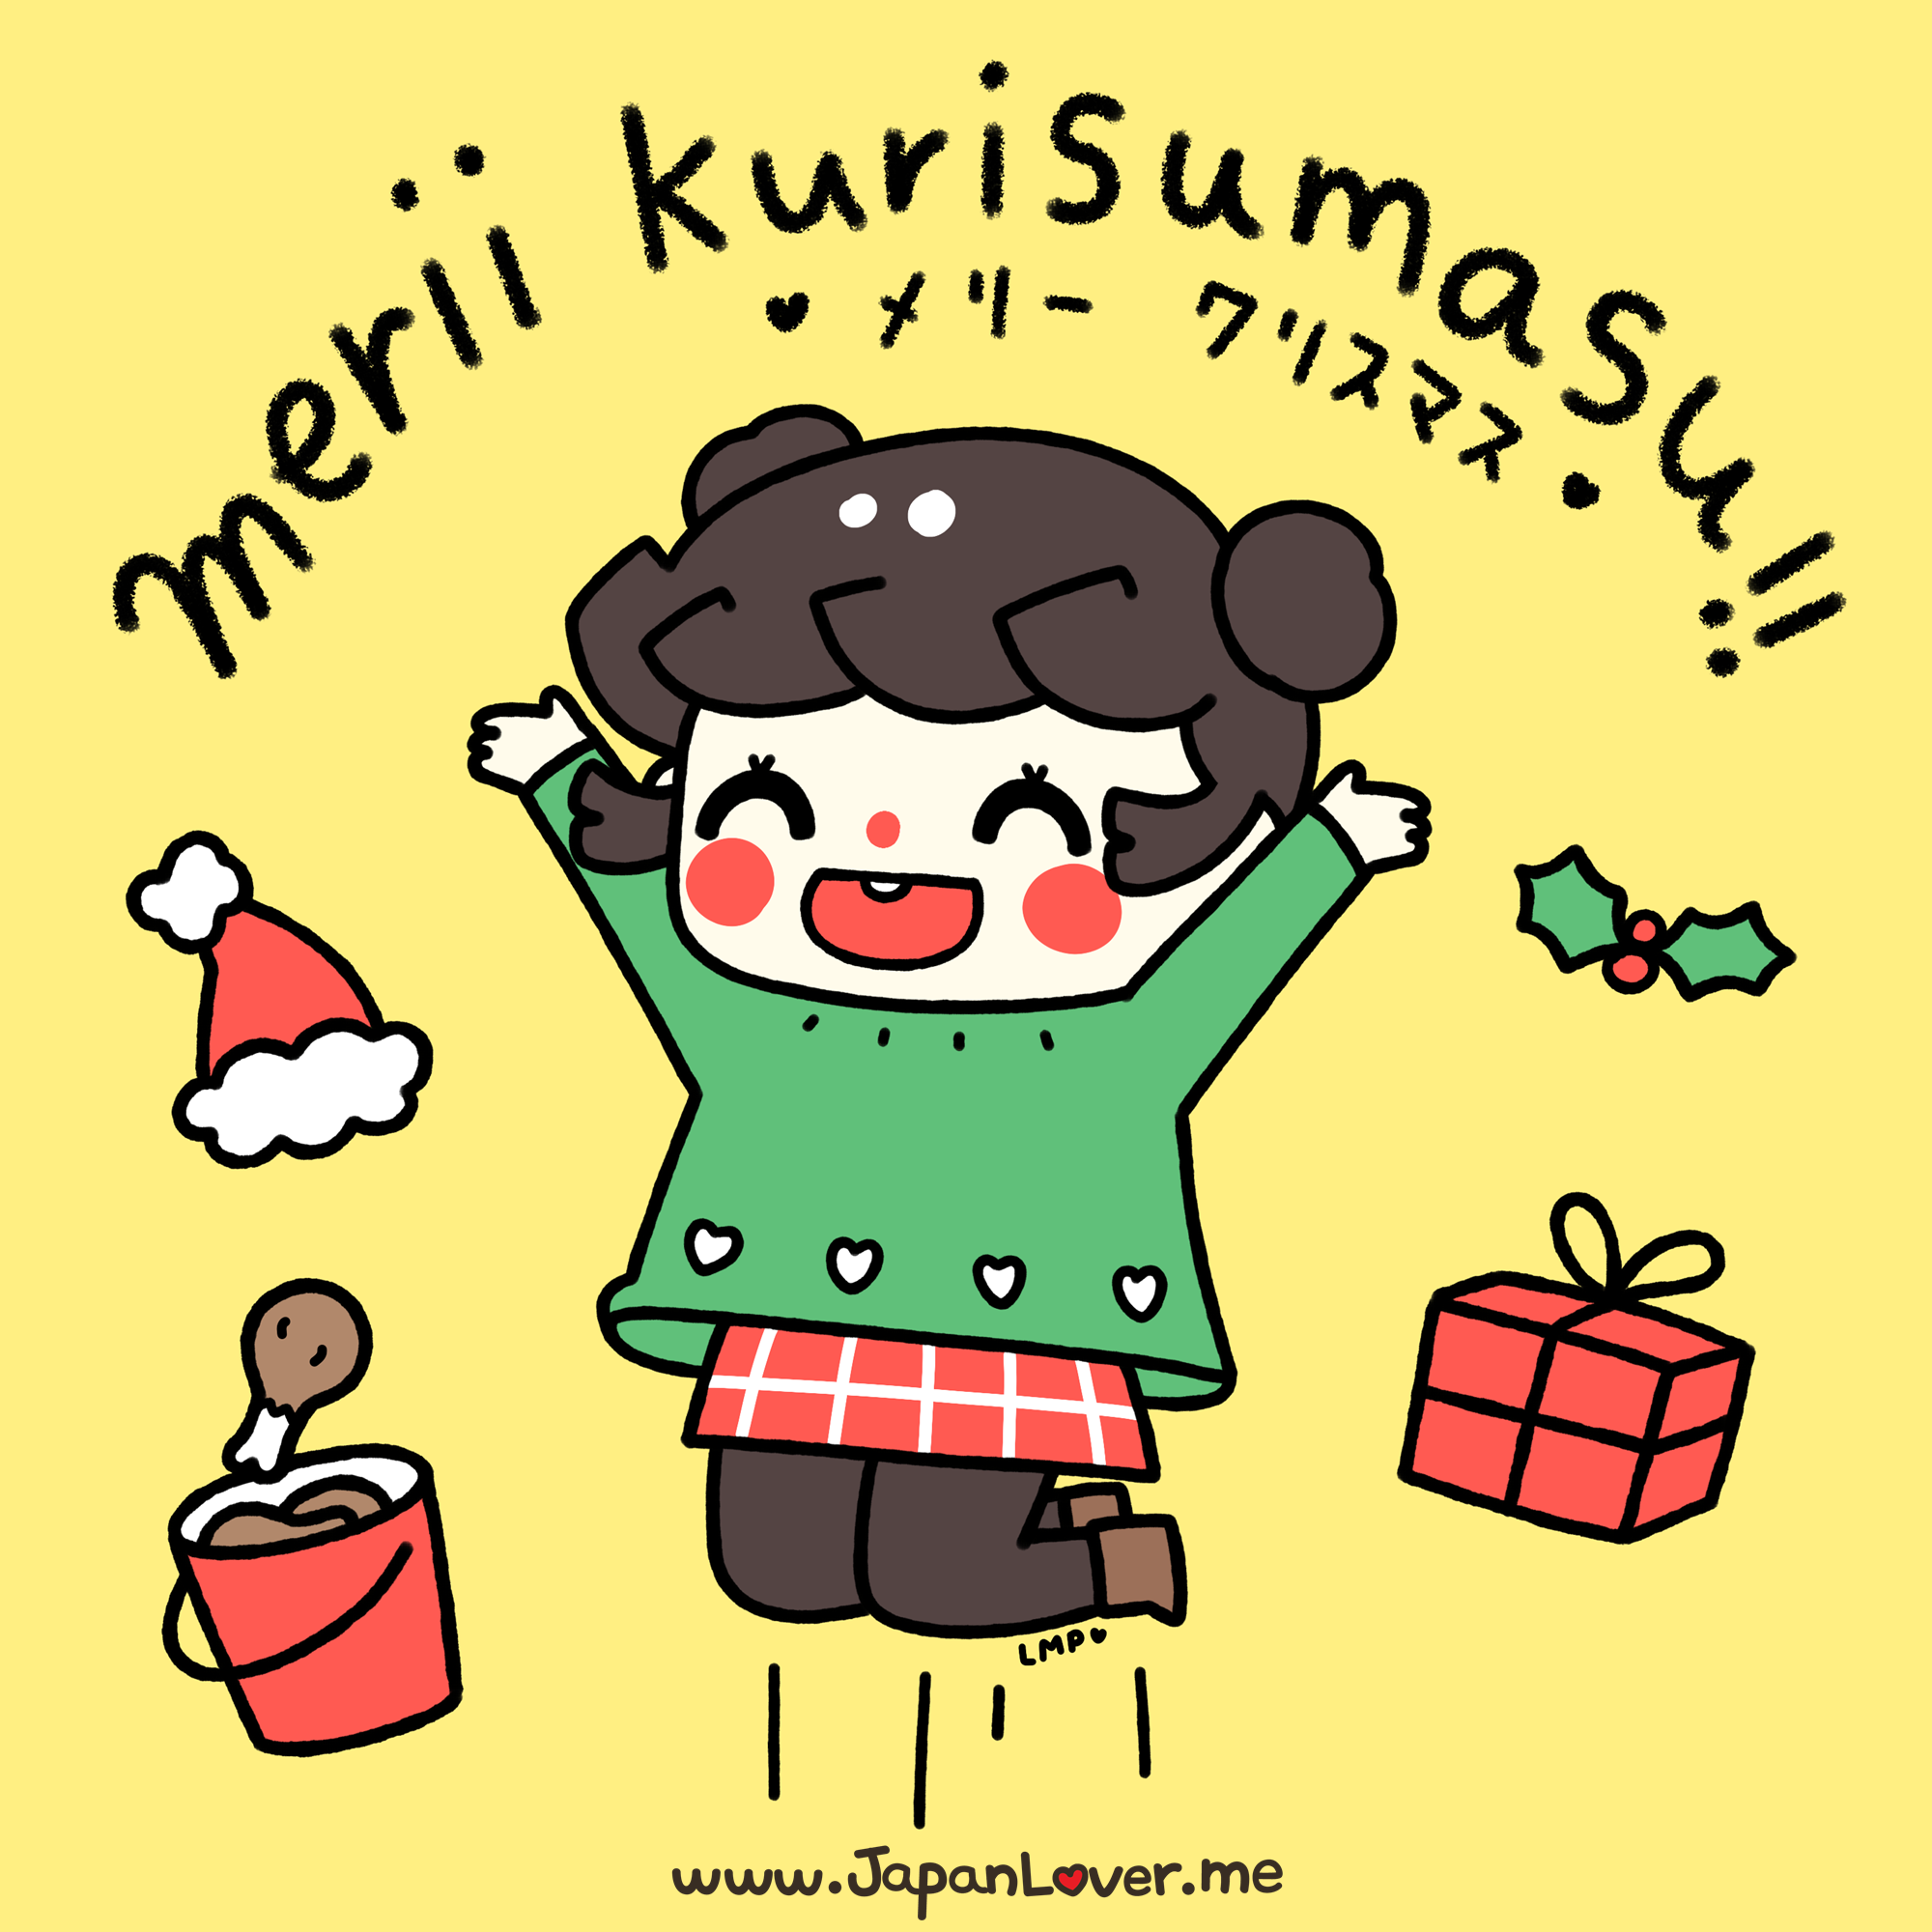 Merry Christmas Japan lover Me